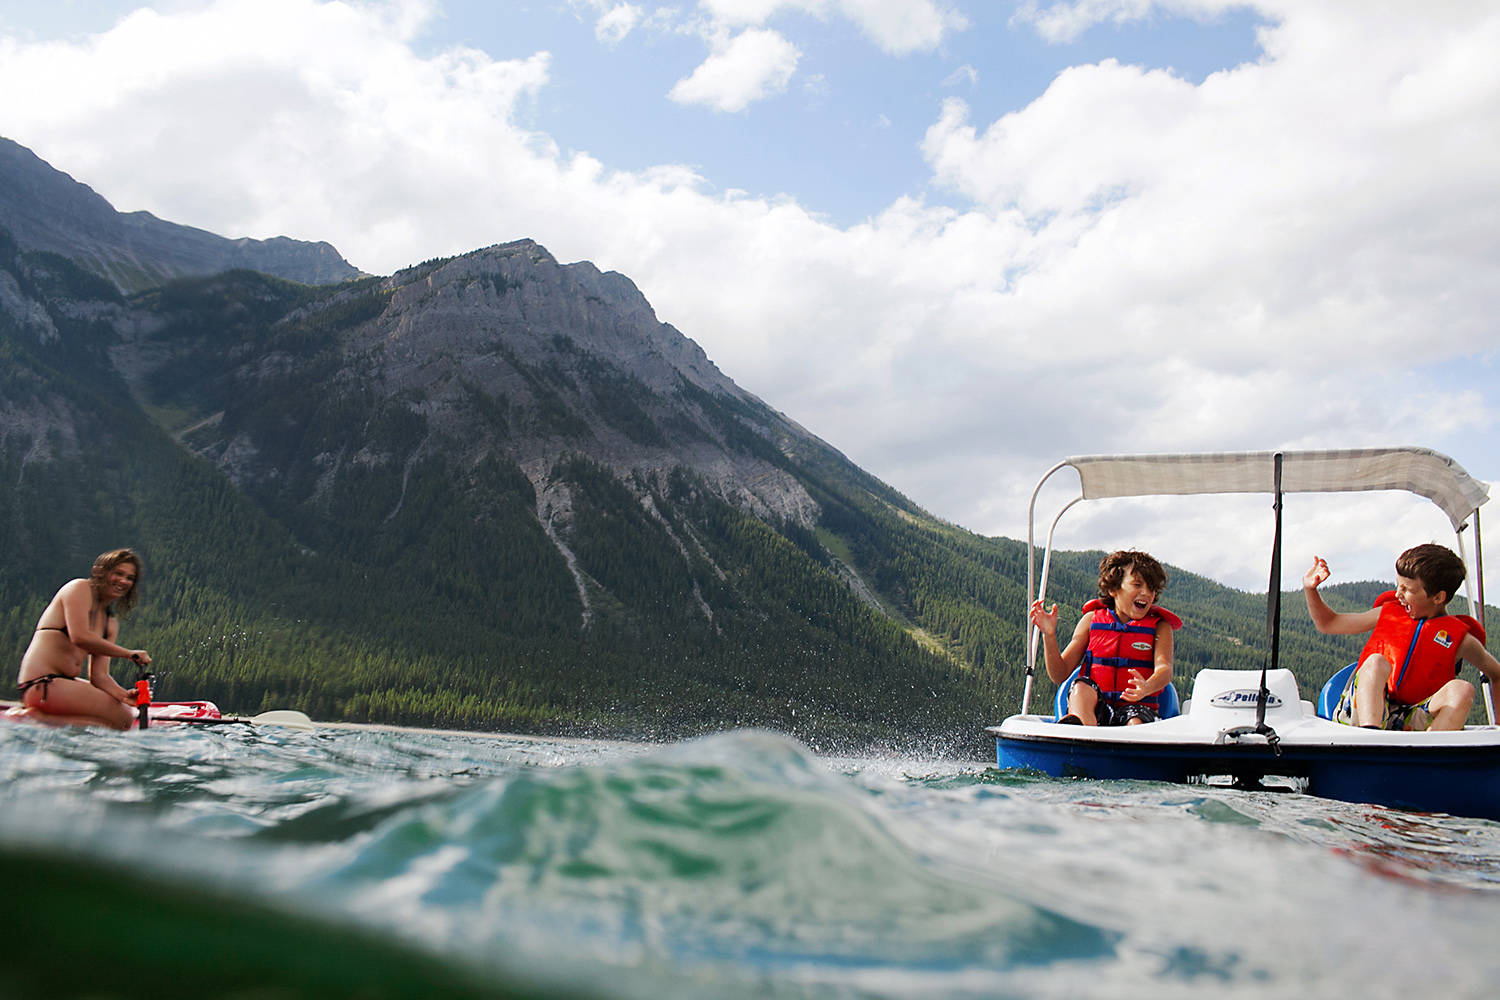 Children playing in a paddle boat in Kananaskis, Alberta